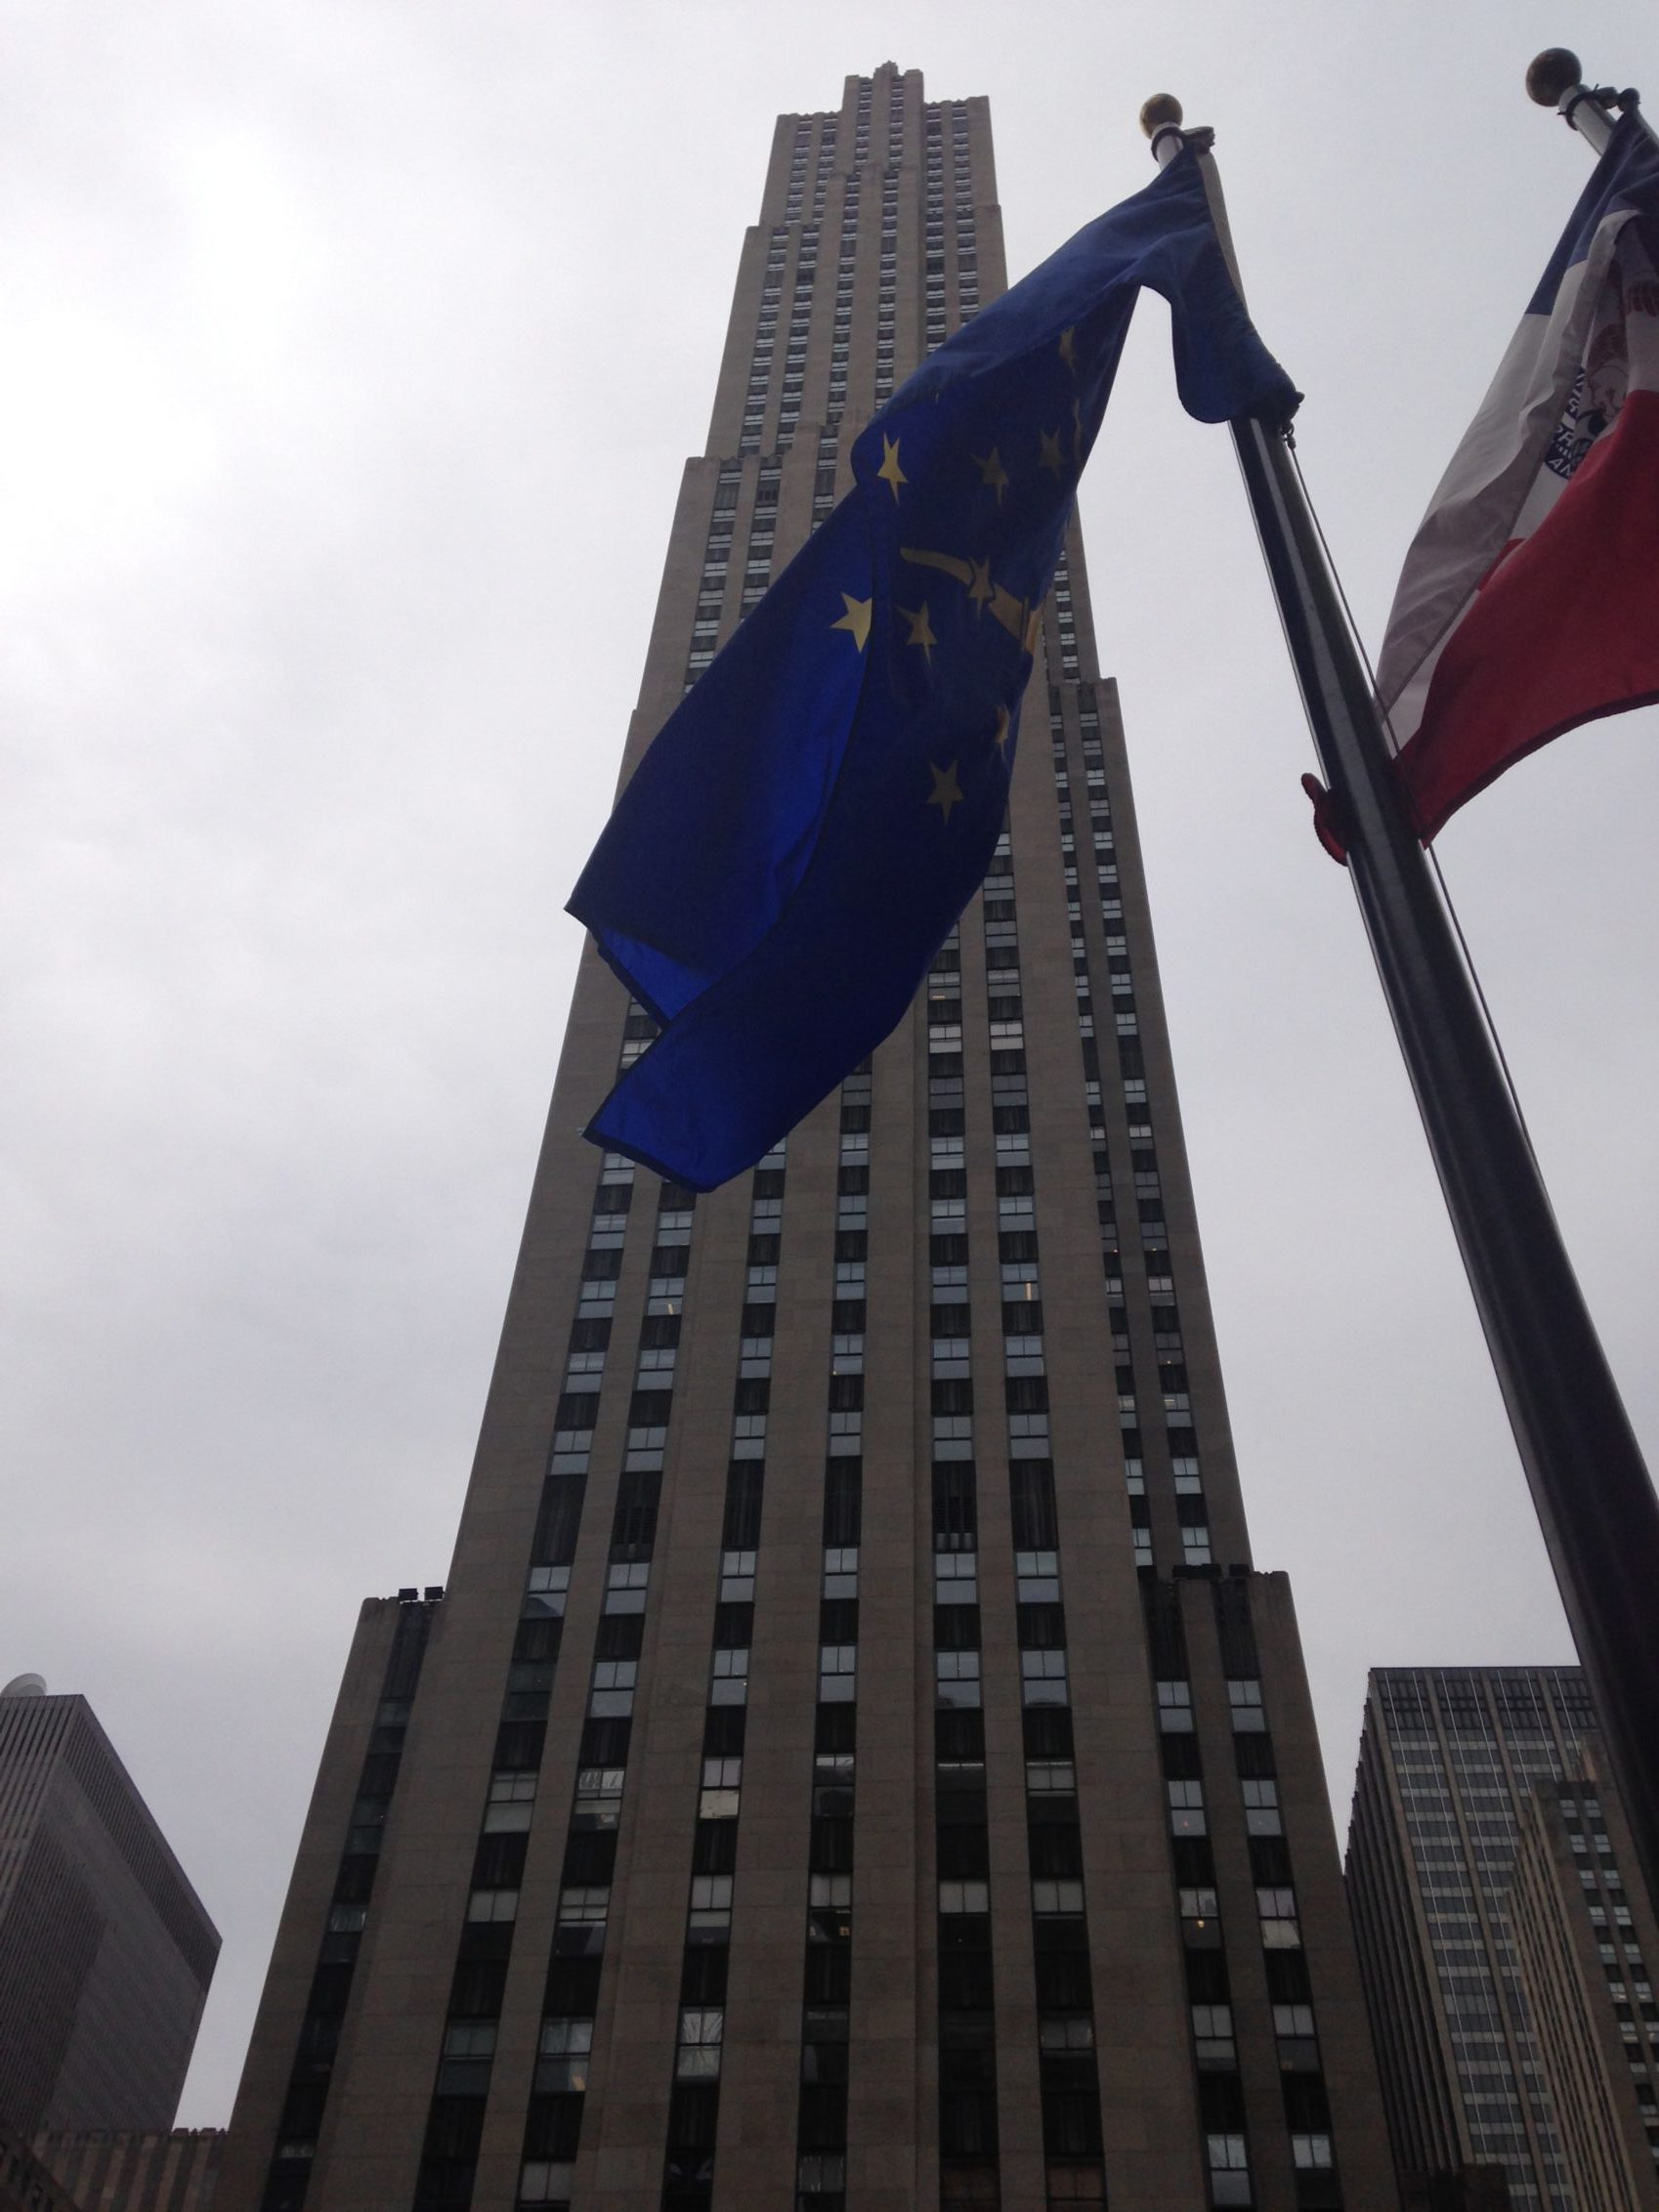 Flags flying in front of the Rockefeller Centre in New York.